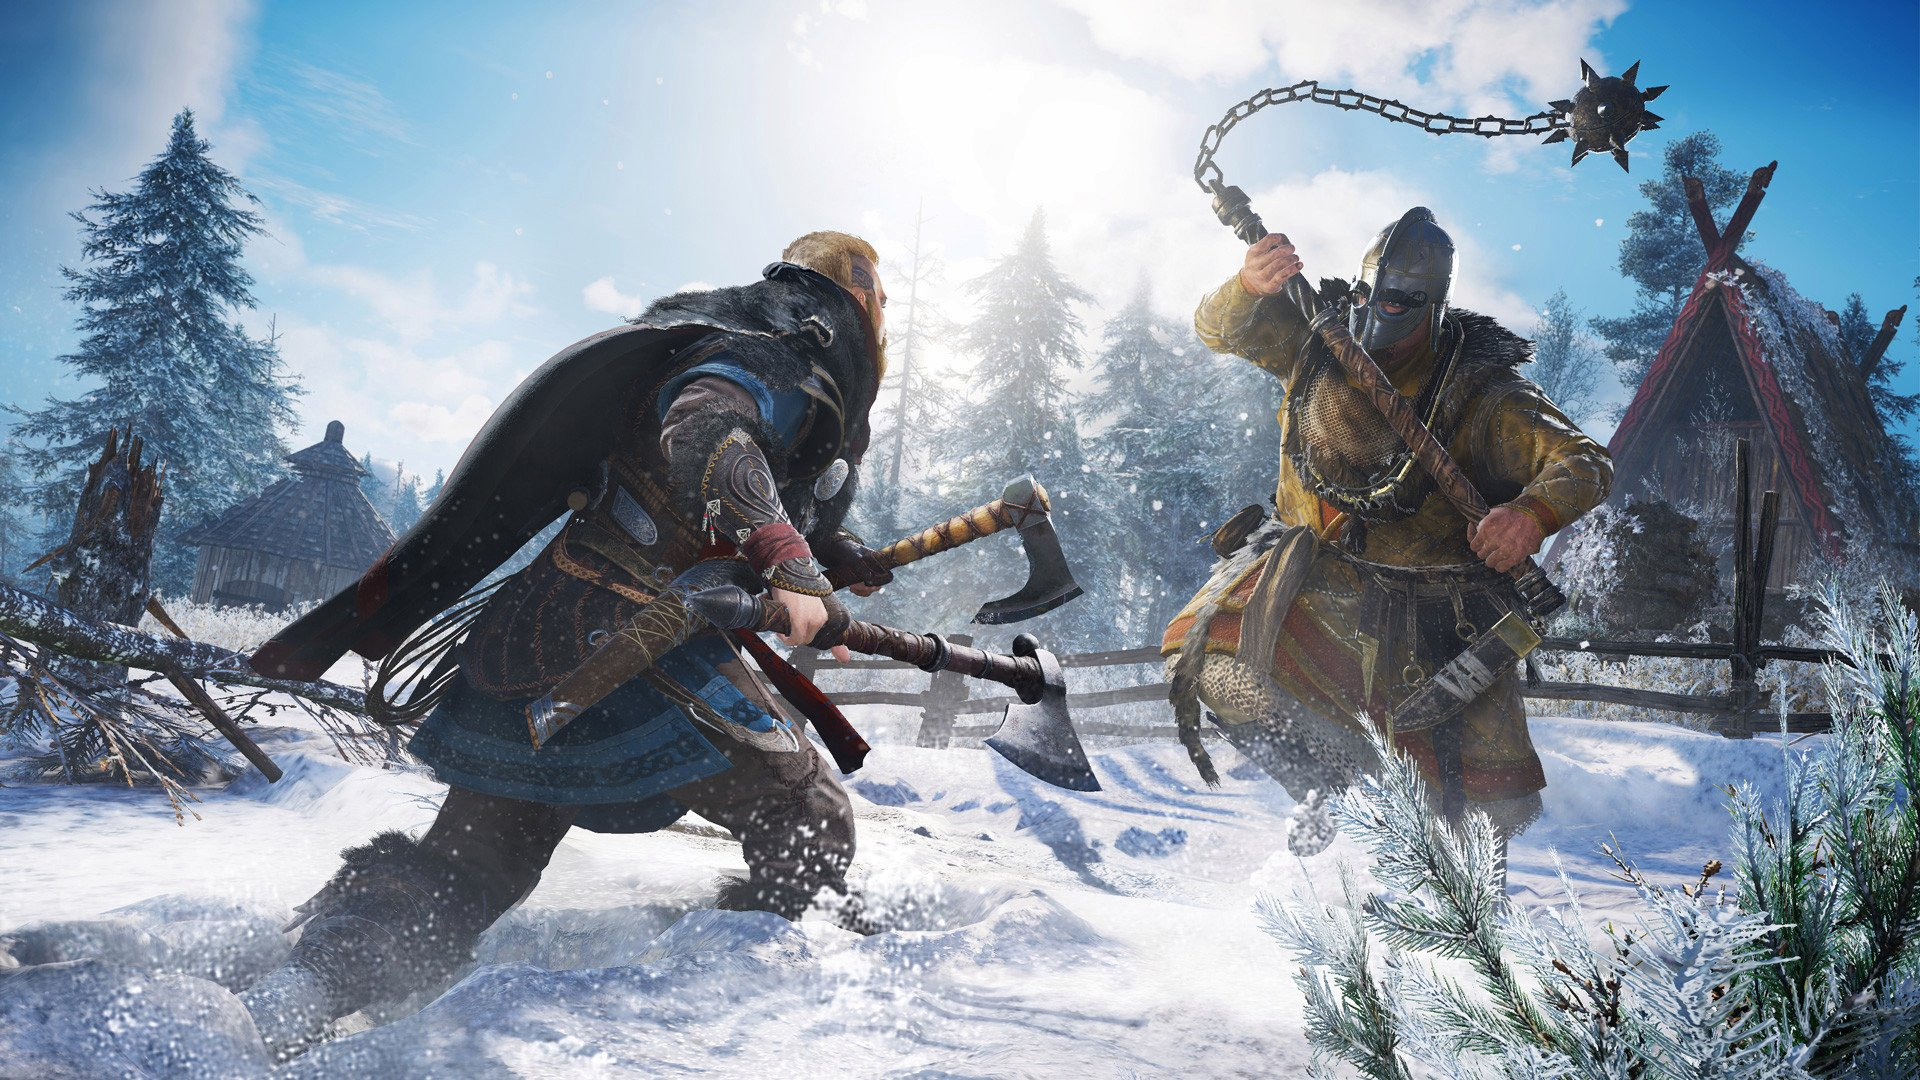 Assassin's Creed Valhalla Has Officially Gone Gold Ahead Of November Release Date